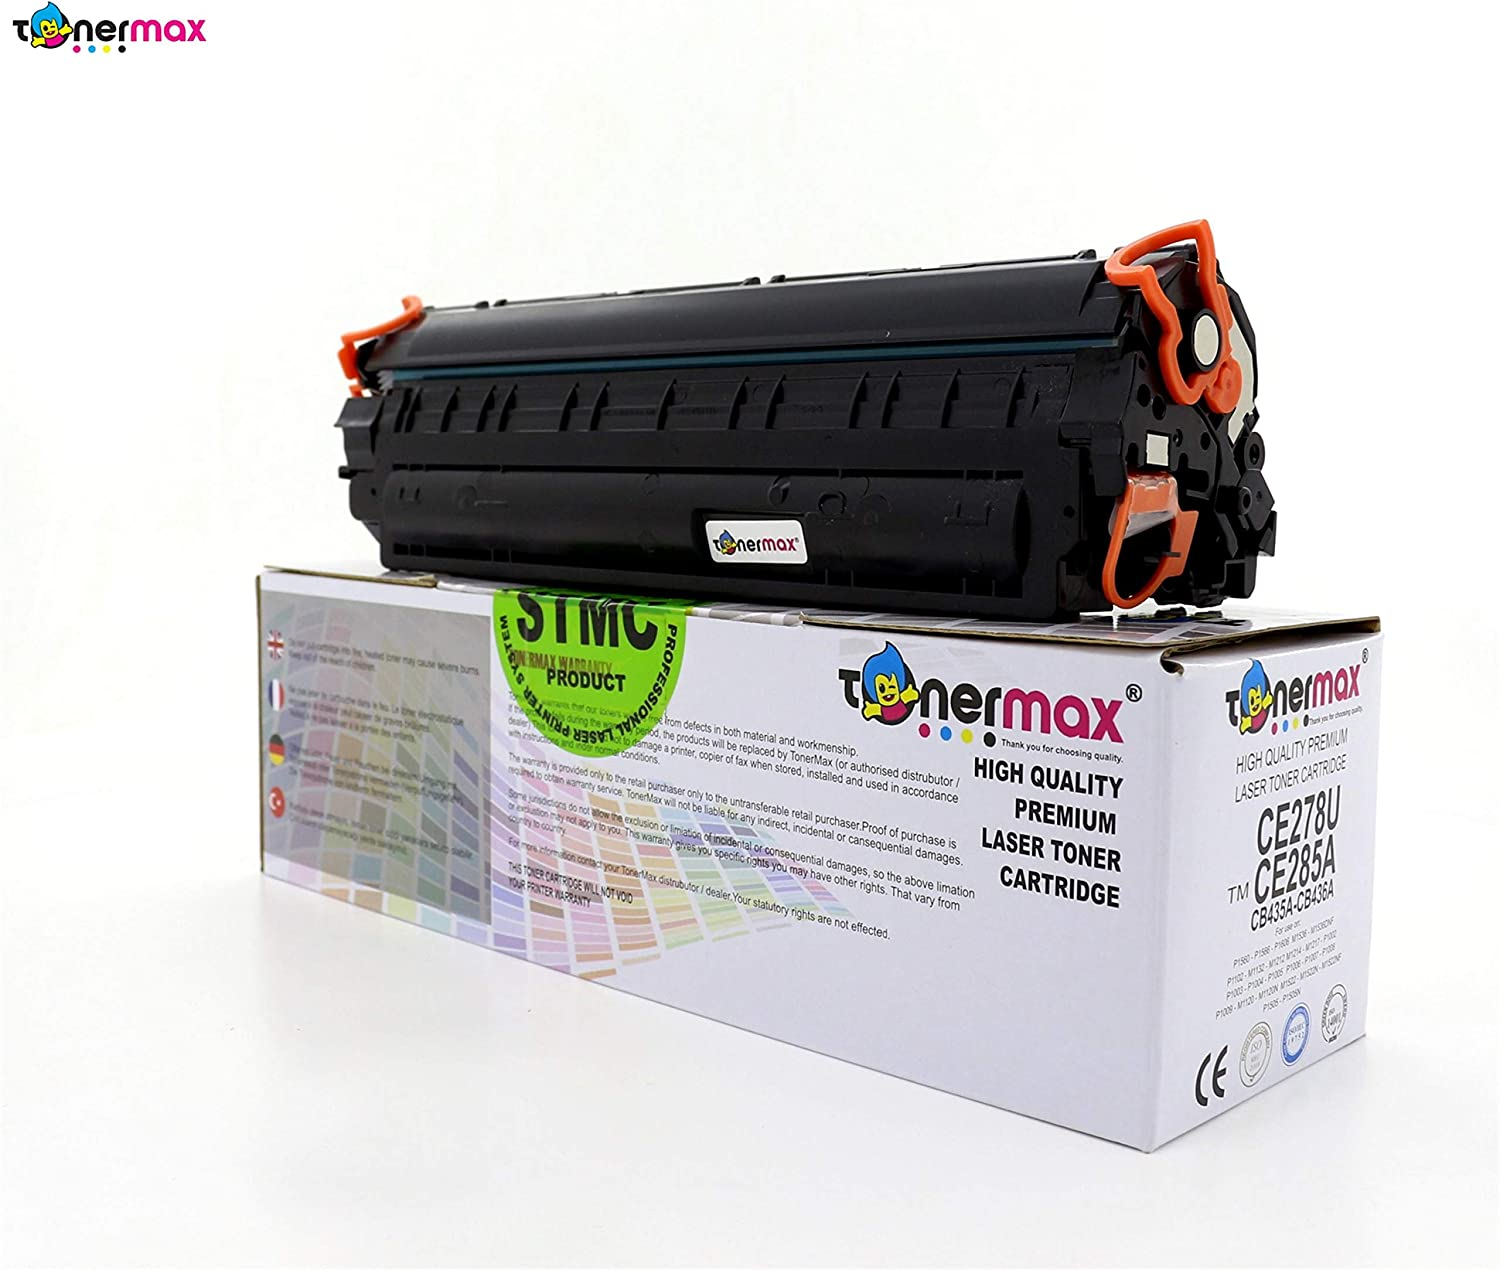 Compatible//Remanufactured Toner Cartridge For LaserJet M1132 85A M1217nfW P1102W 2 Pack 2 Pack 2inkjet CE285A M1212nf P1102